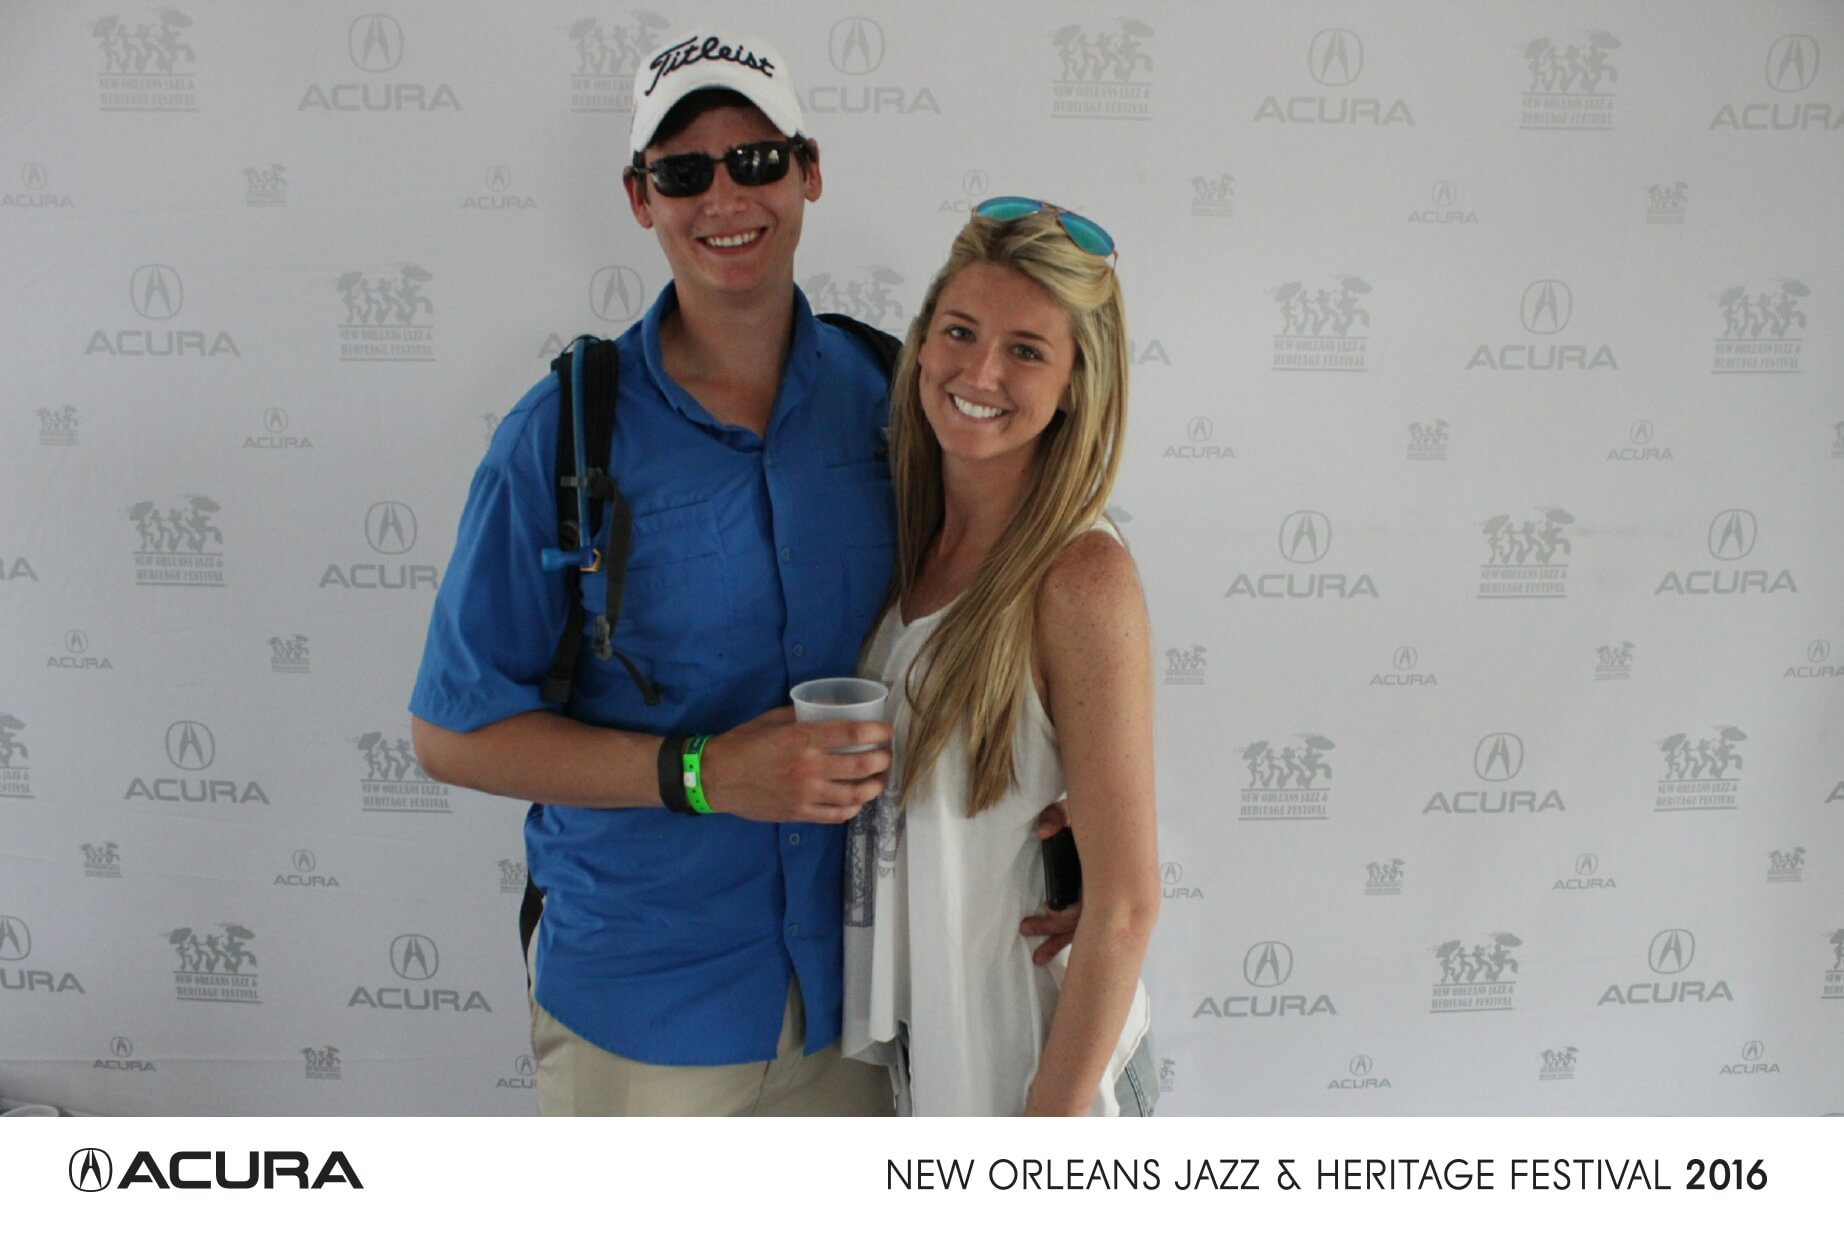 new orleans jazz festival social media photo booth